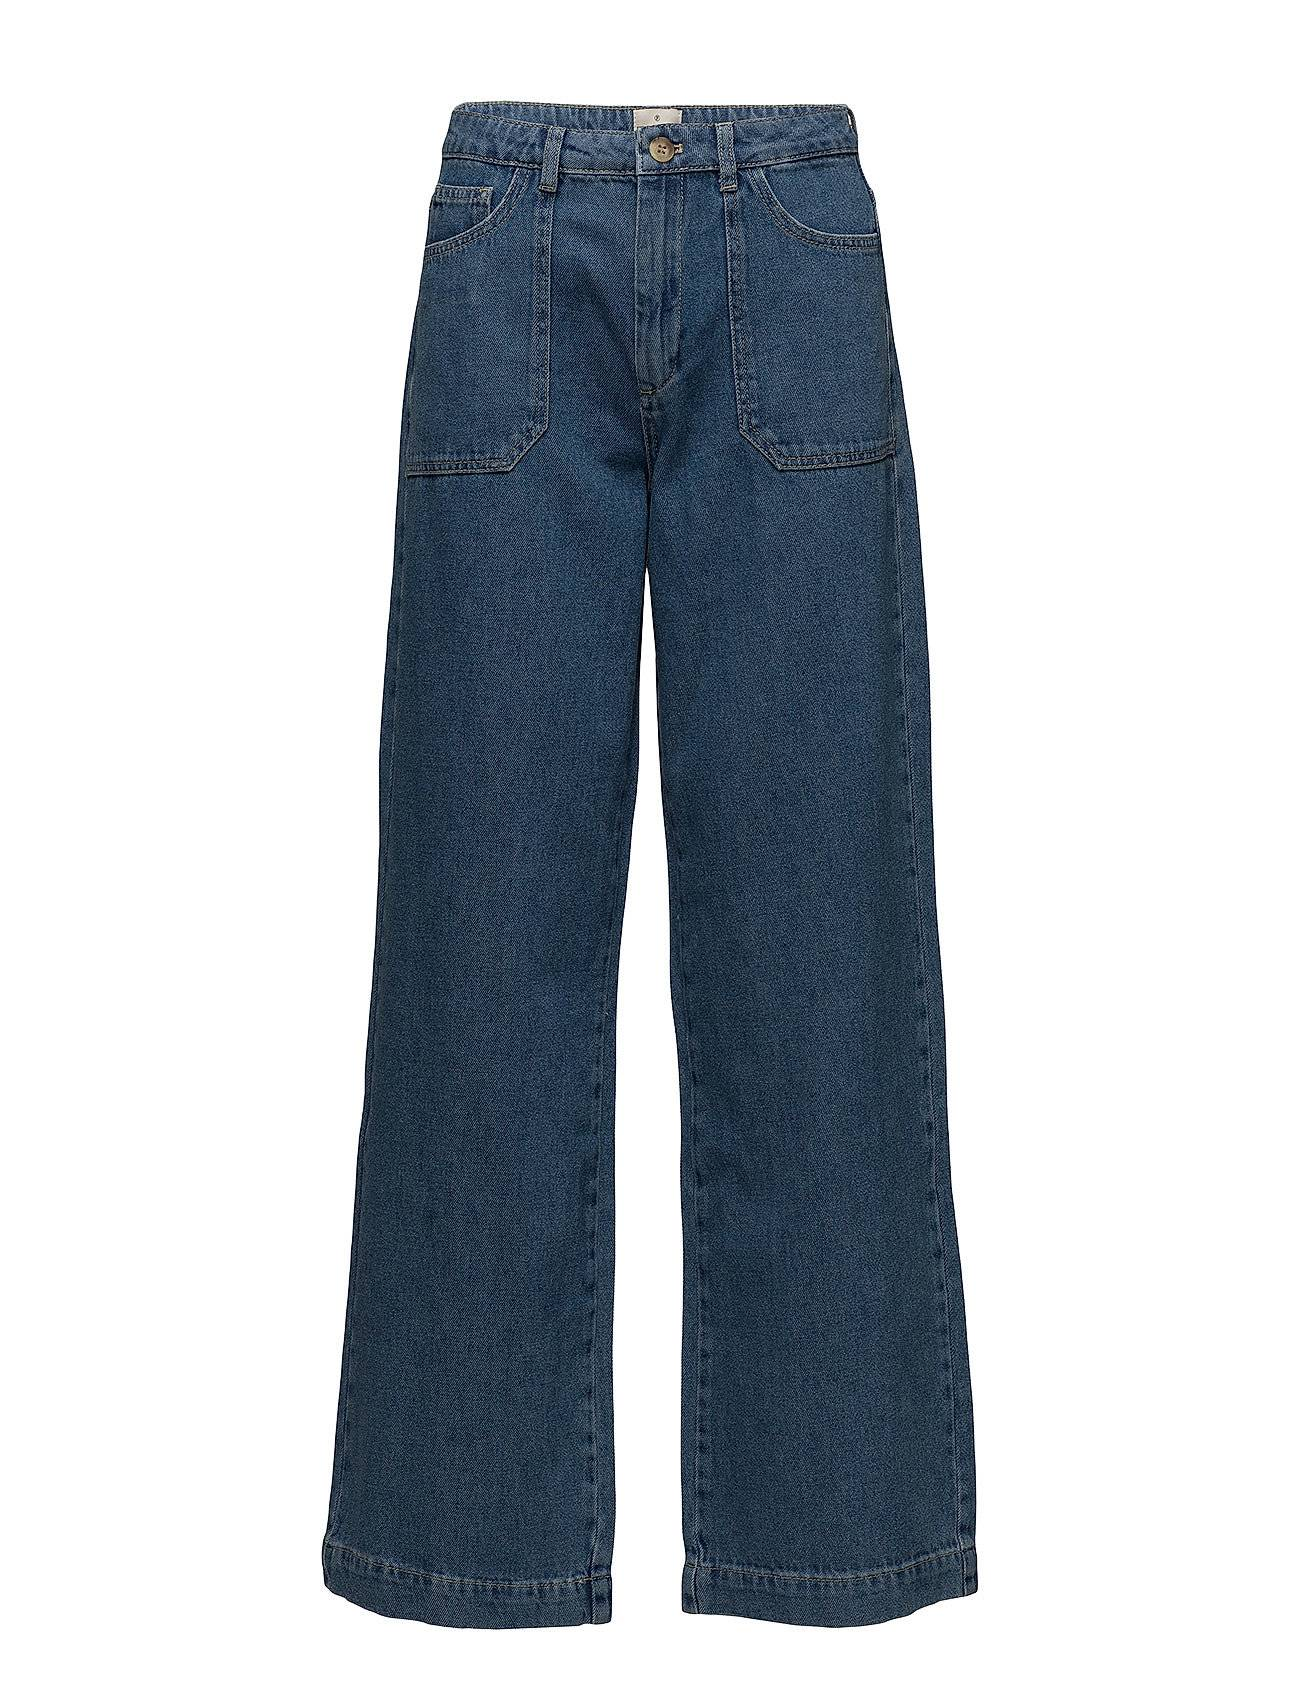 French Connection Shelby Denim Wide Leg Jeans